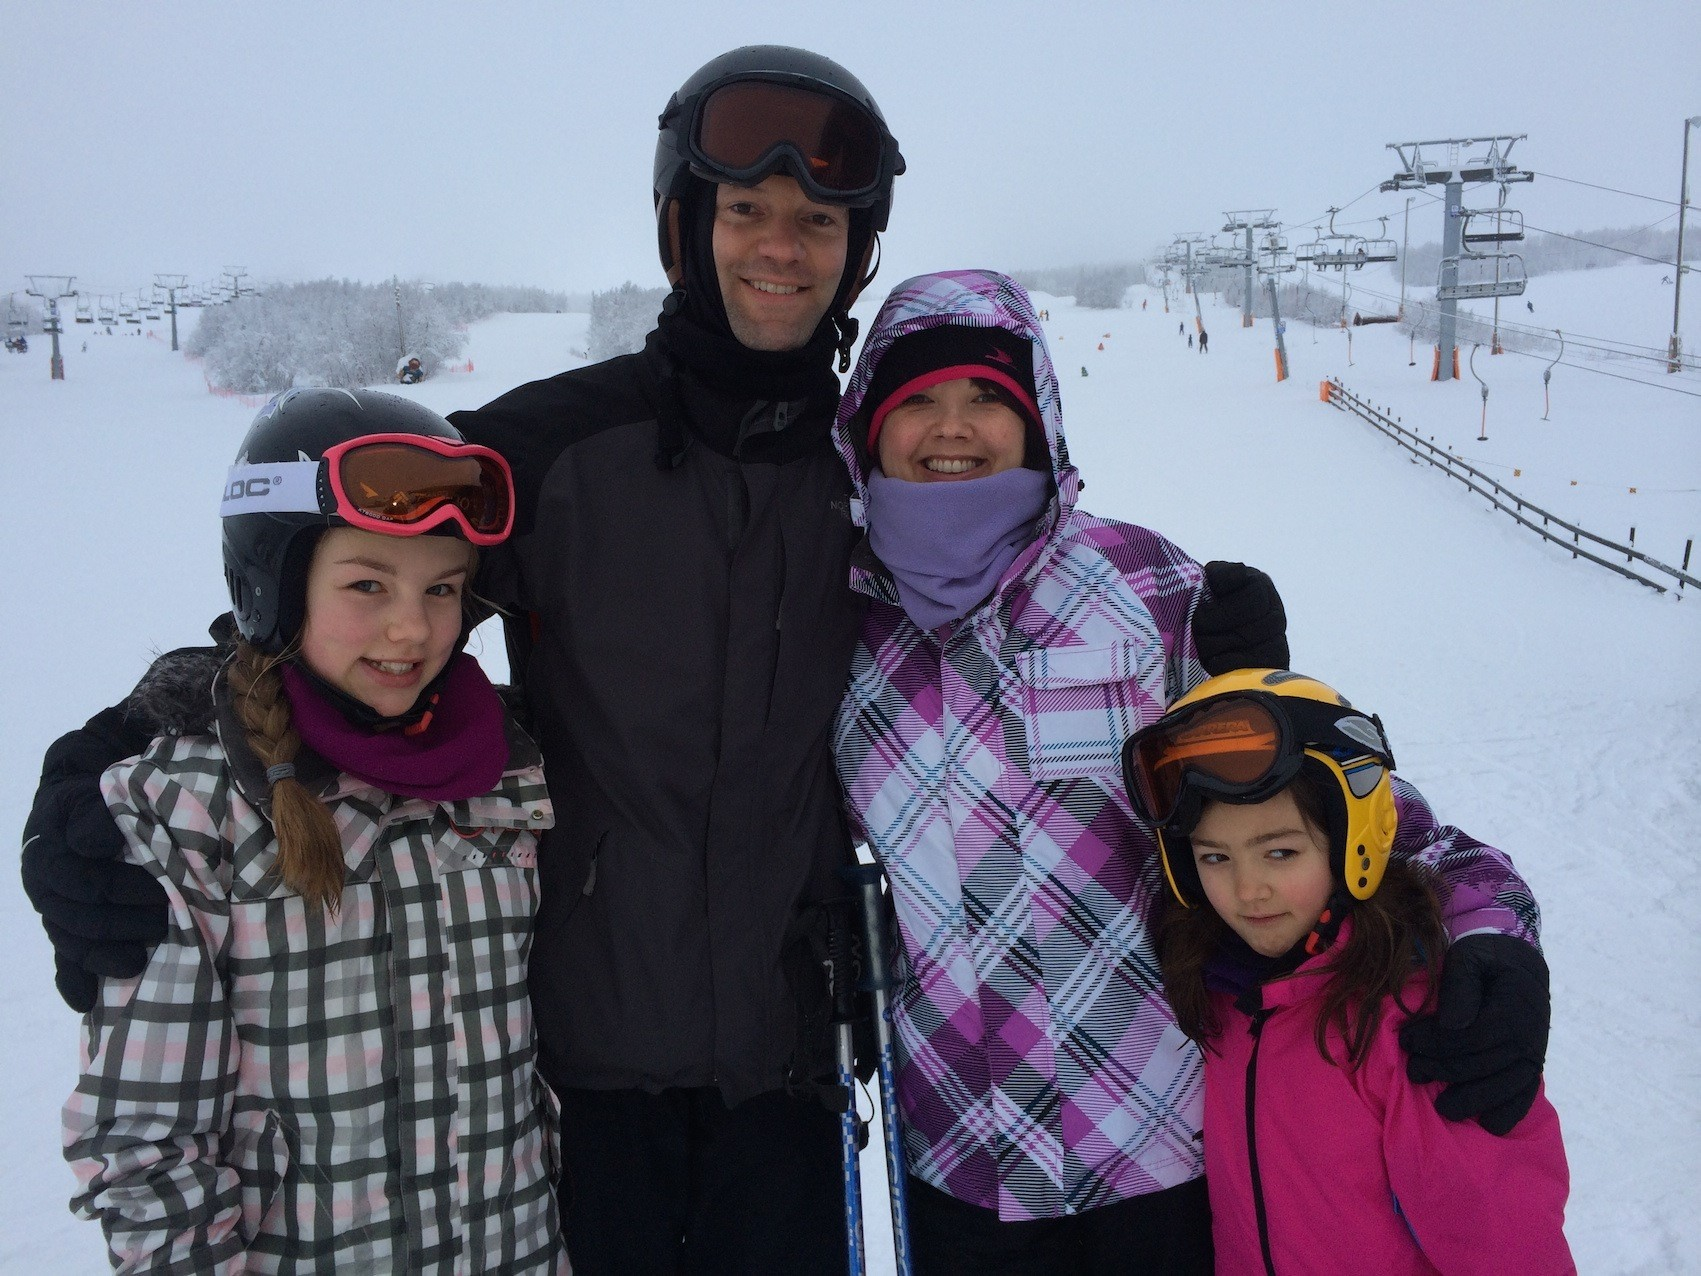 Brooks family skiing holiday